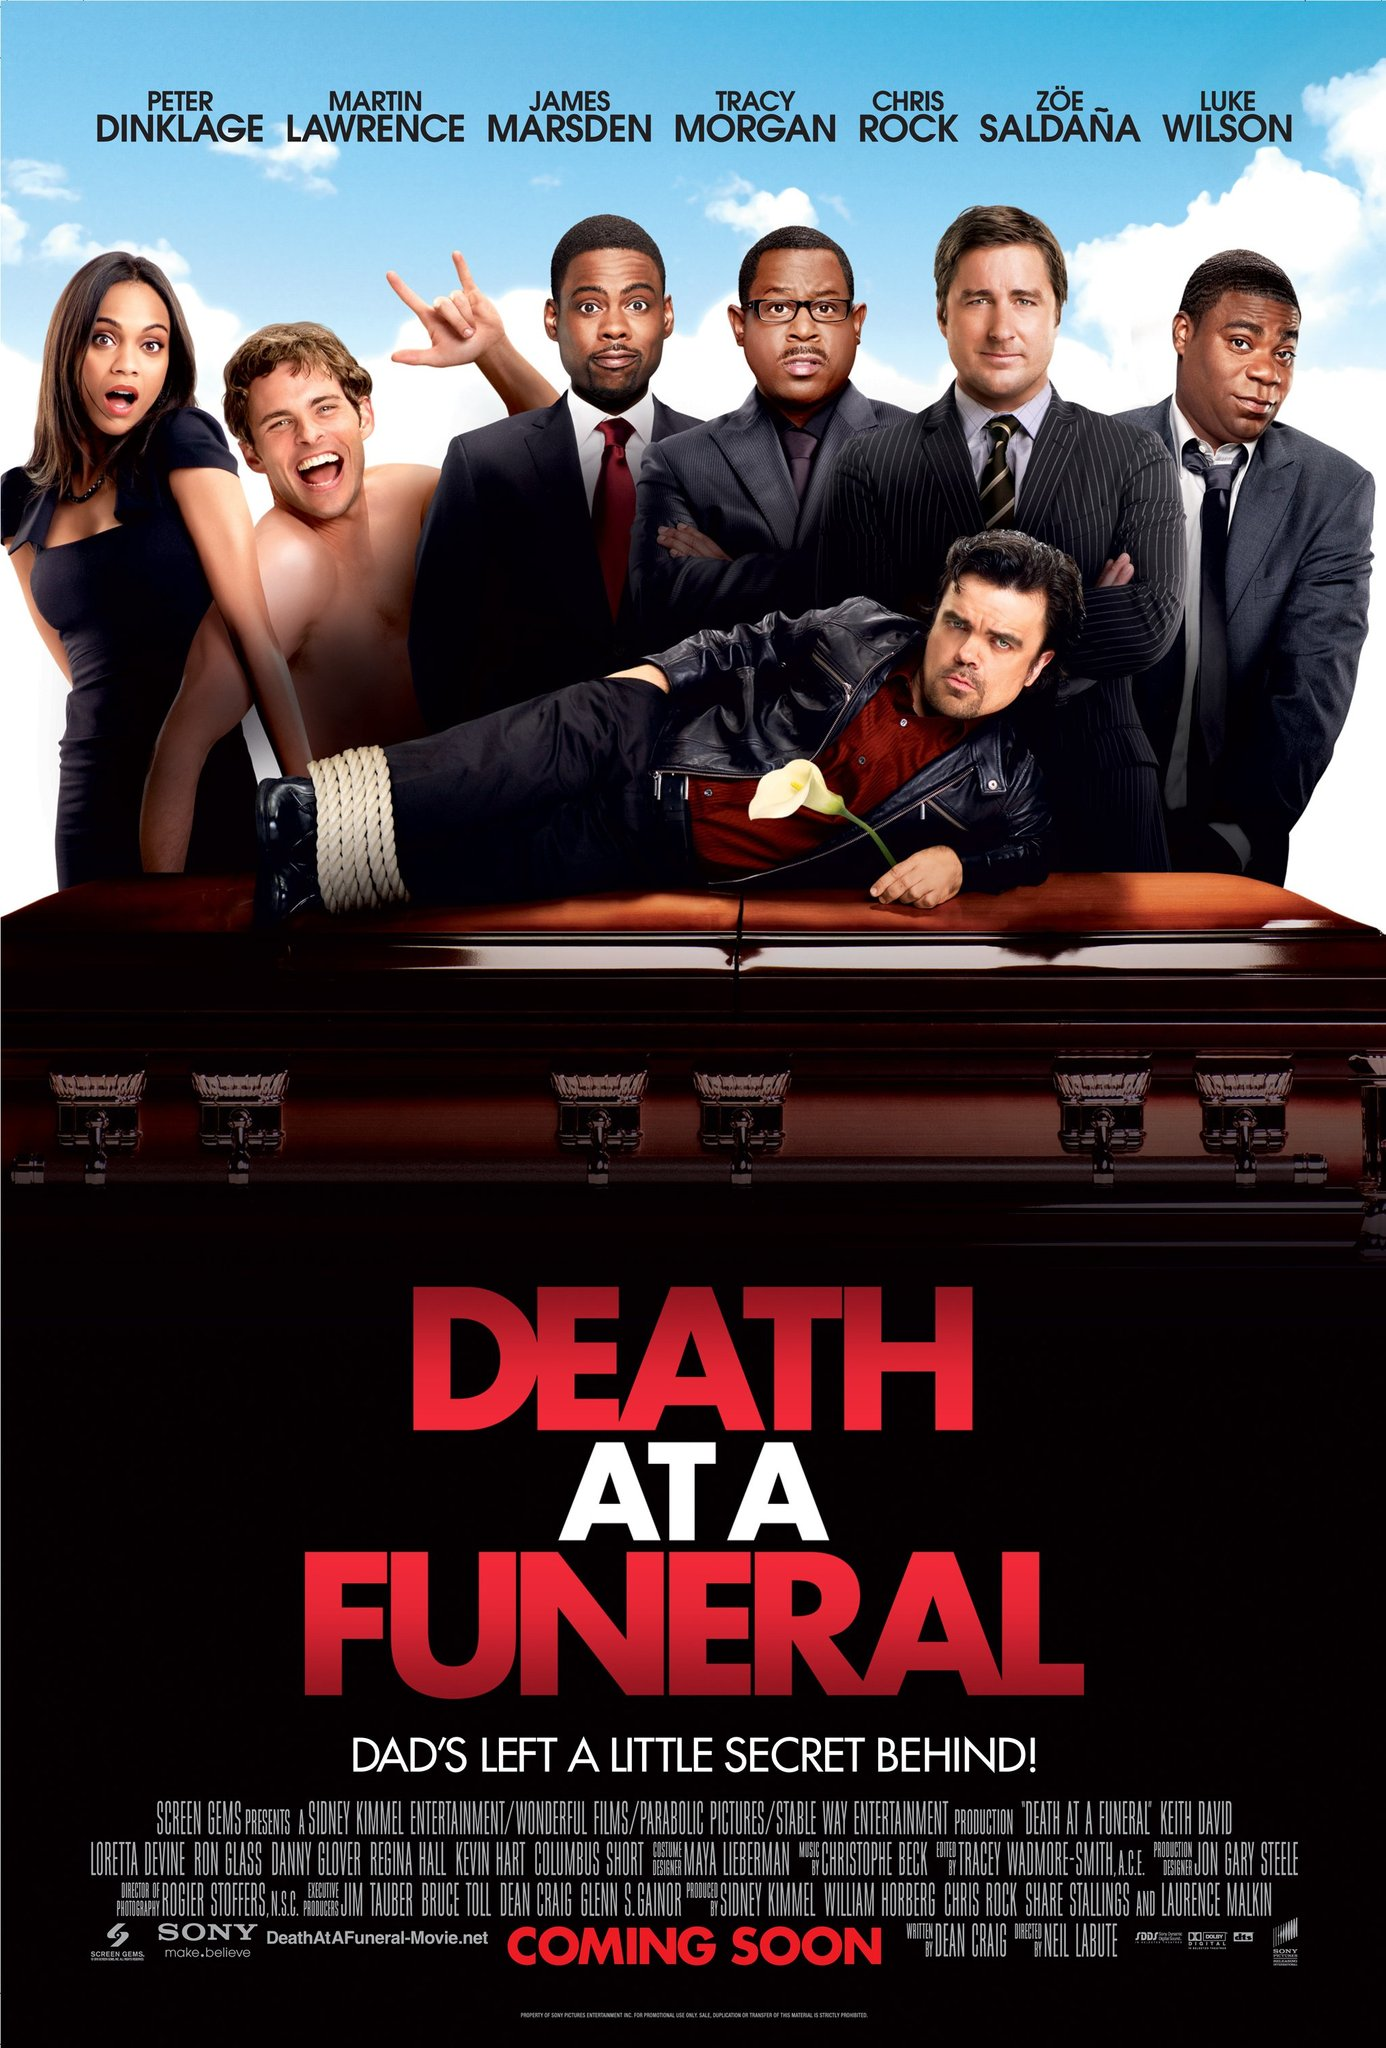 Death At A Funeral (2010) 720p BluRay x264 ESubs AC3 Dual Audio [Hindi DD2.0 + English DD2.0] 930MB Download | Watch Online